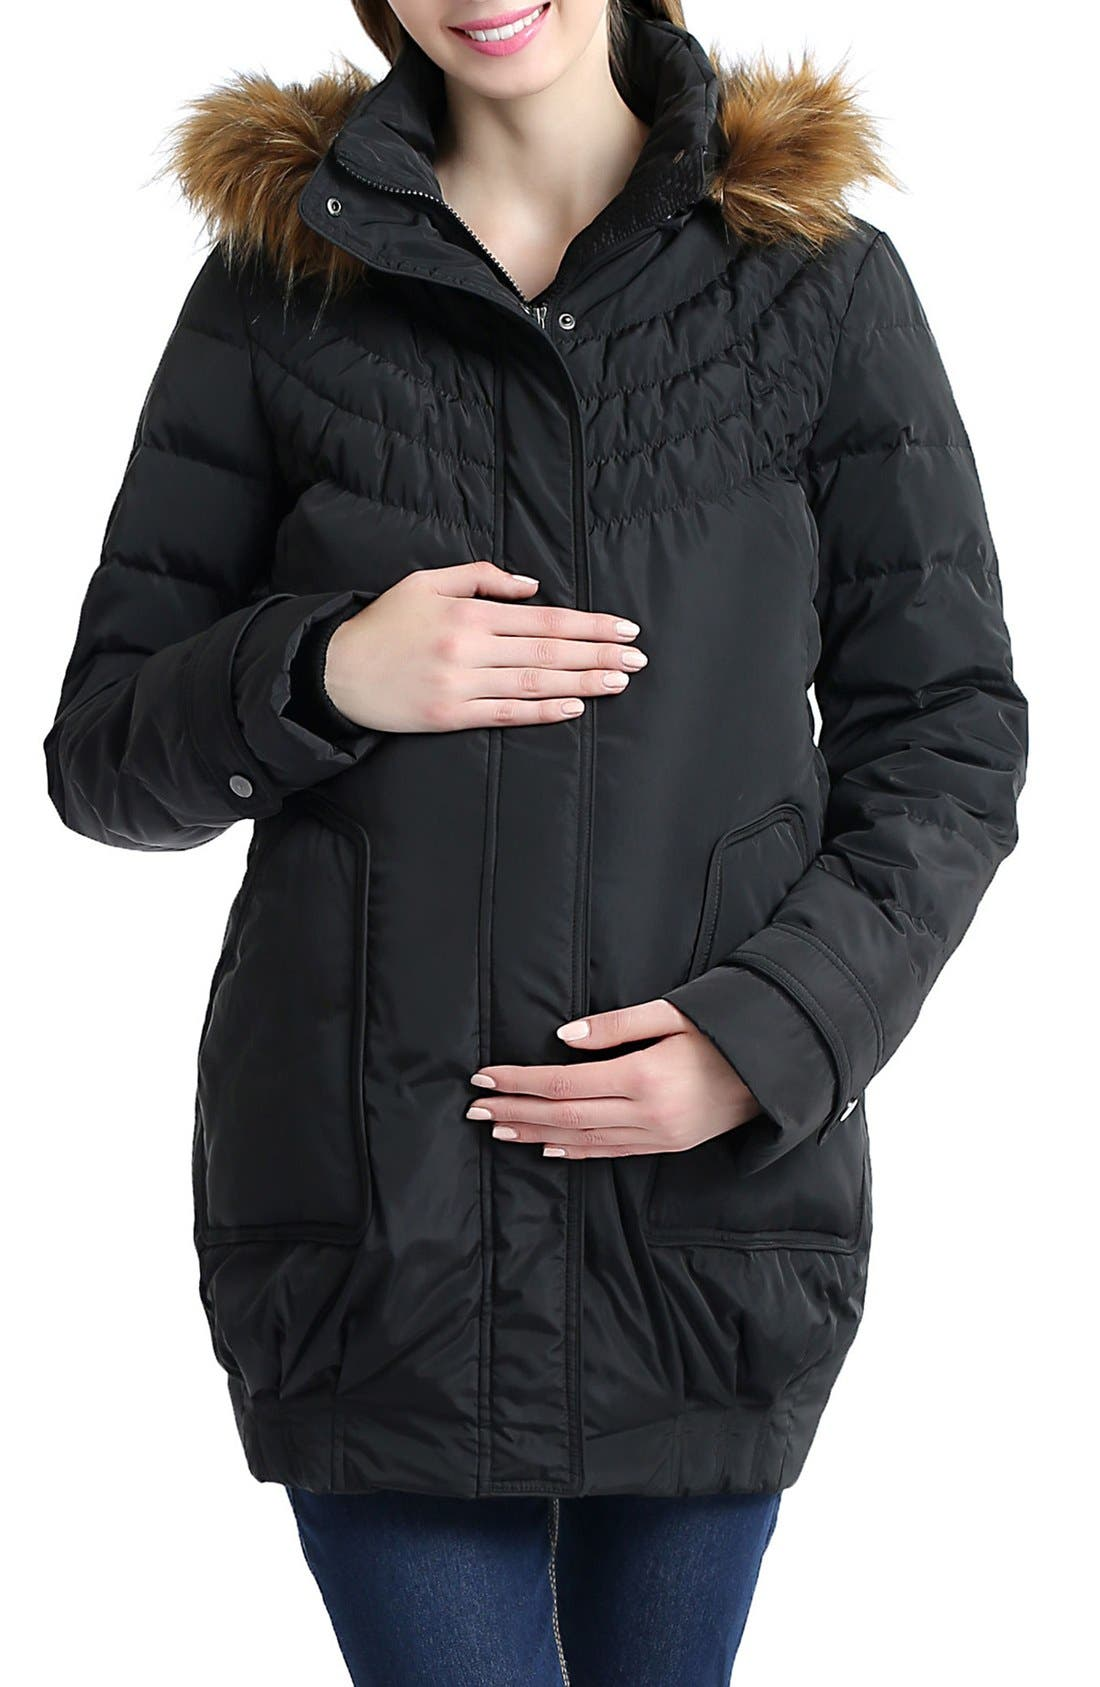 'Arlo' Water Resistant Down Maternity Parka with Baby Carrier Cover Inset,                             Main thumbnail 1, color,                             BLACK